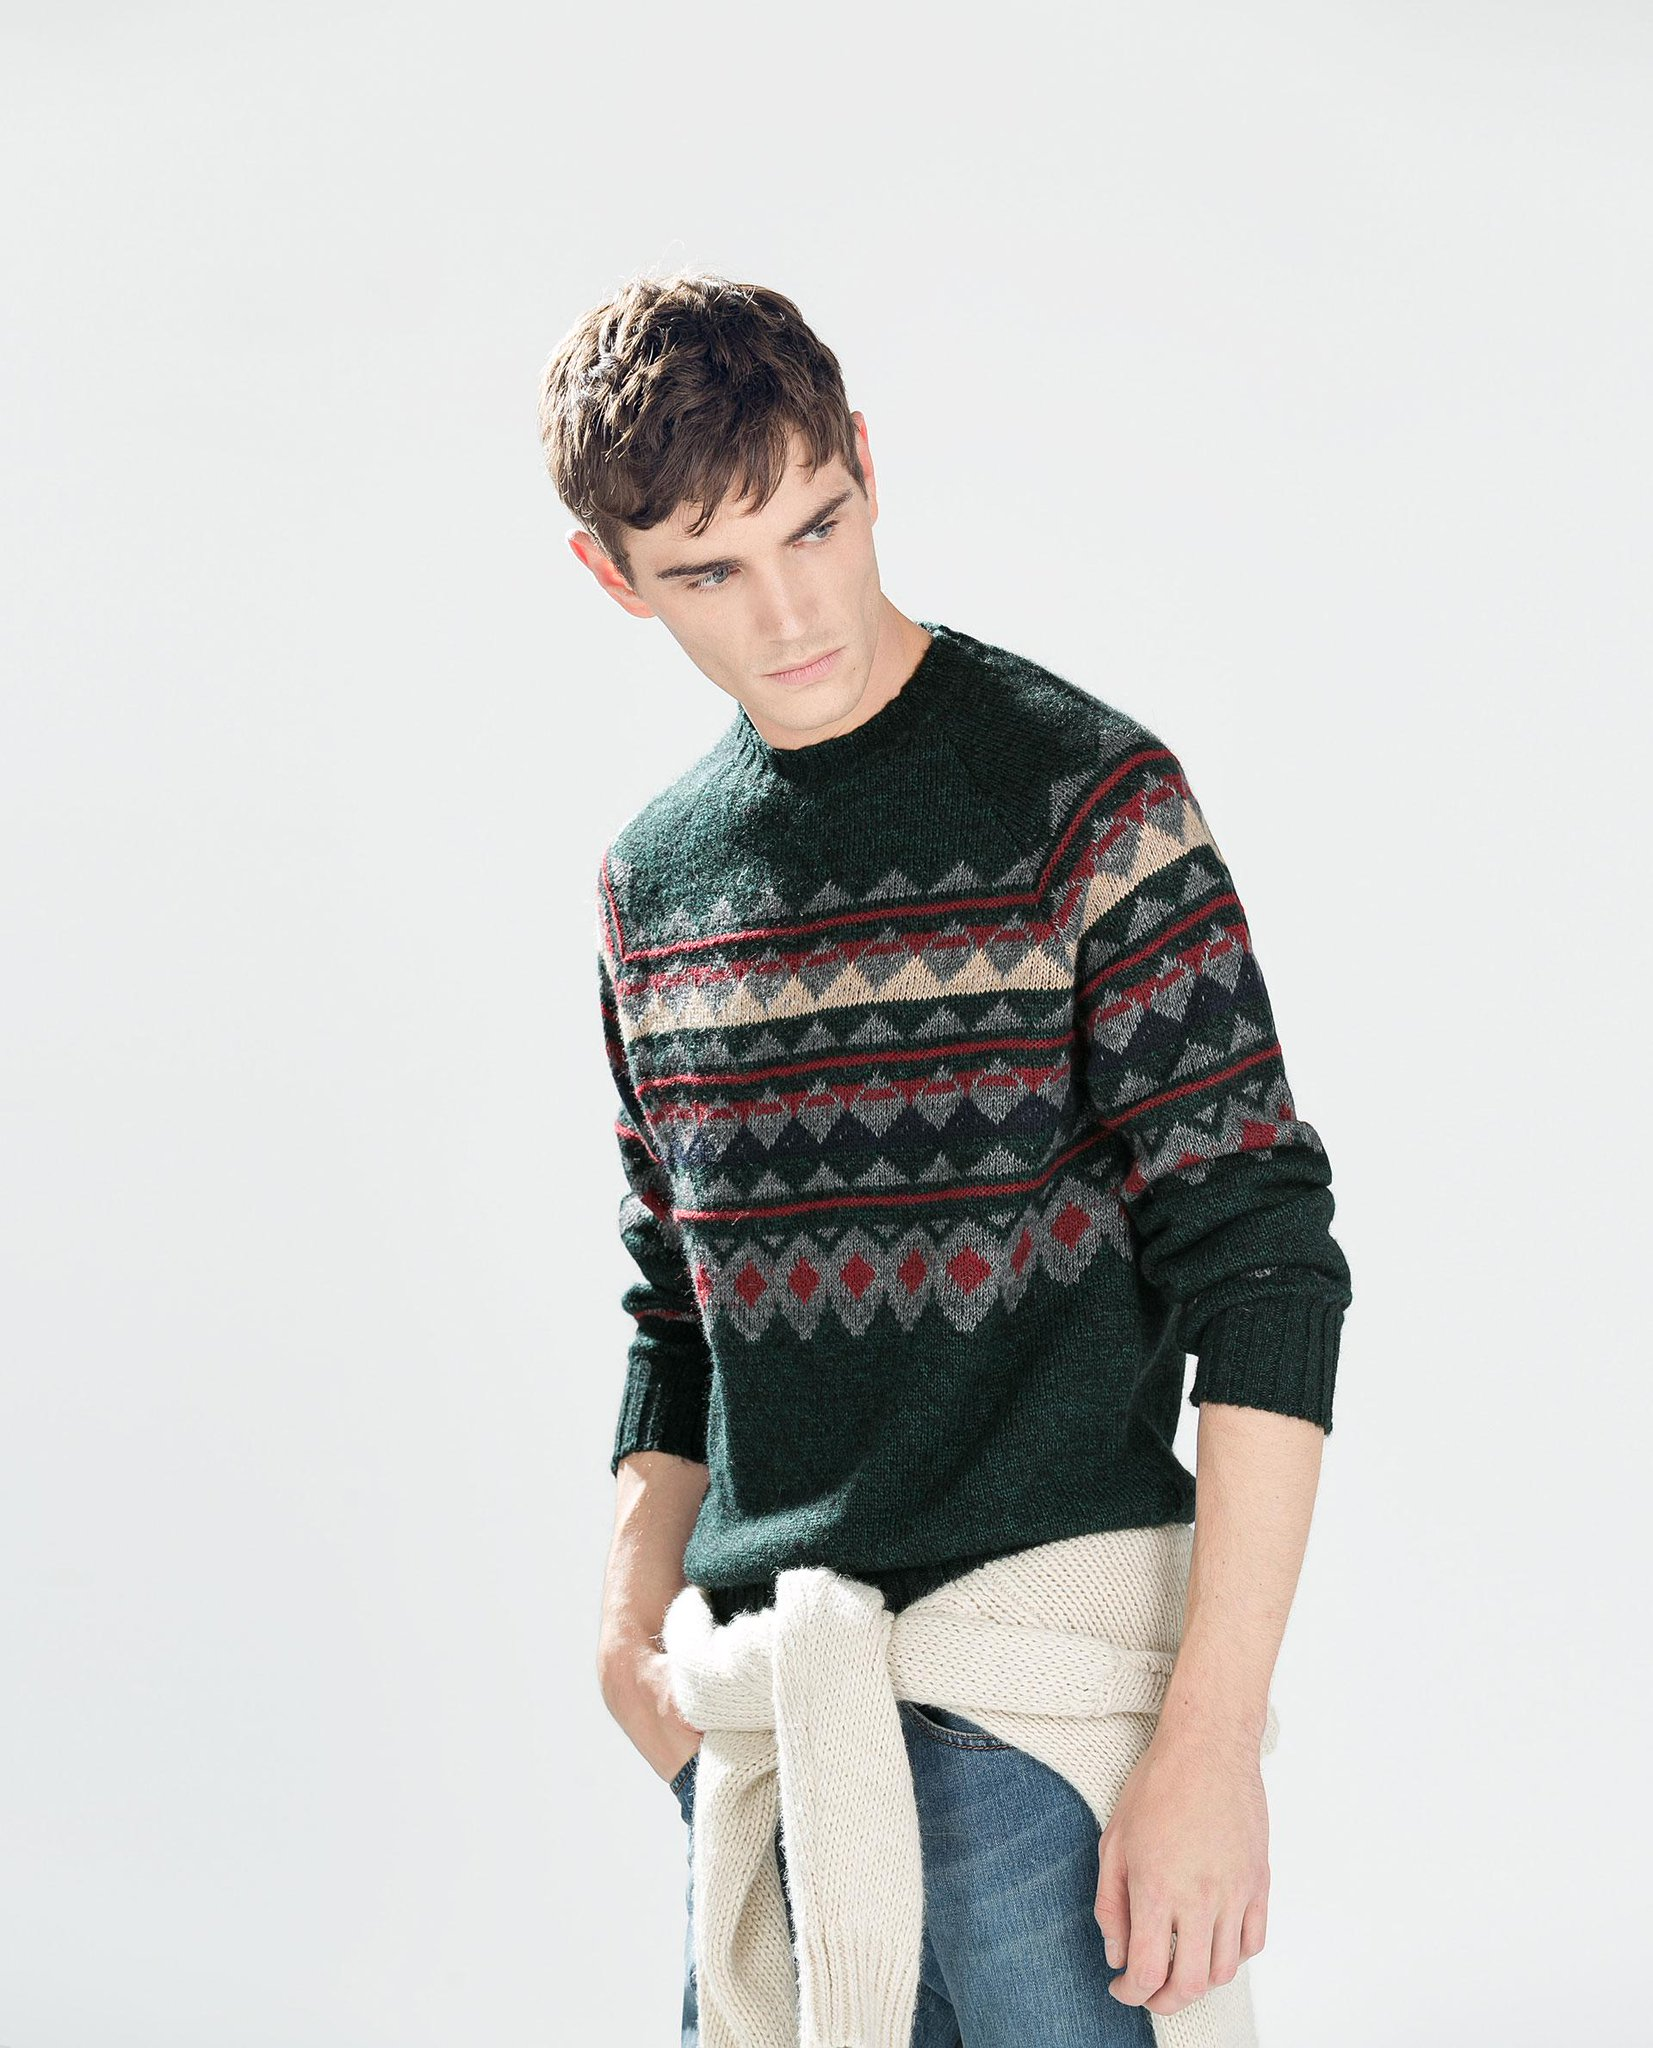 Start your holiday shopping early! Our favorite cozy picks for the men in your life: http://t.co/xJKsHoPQh9 http://t.co/KGcqhd732N